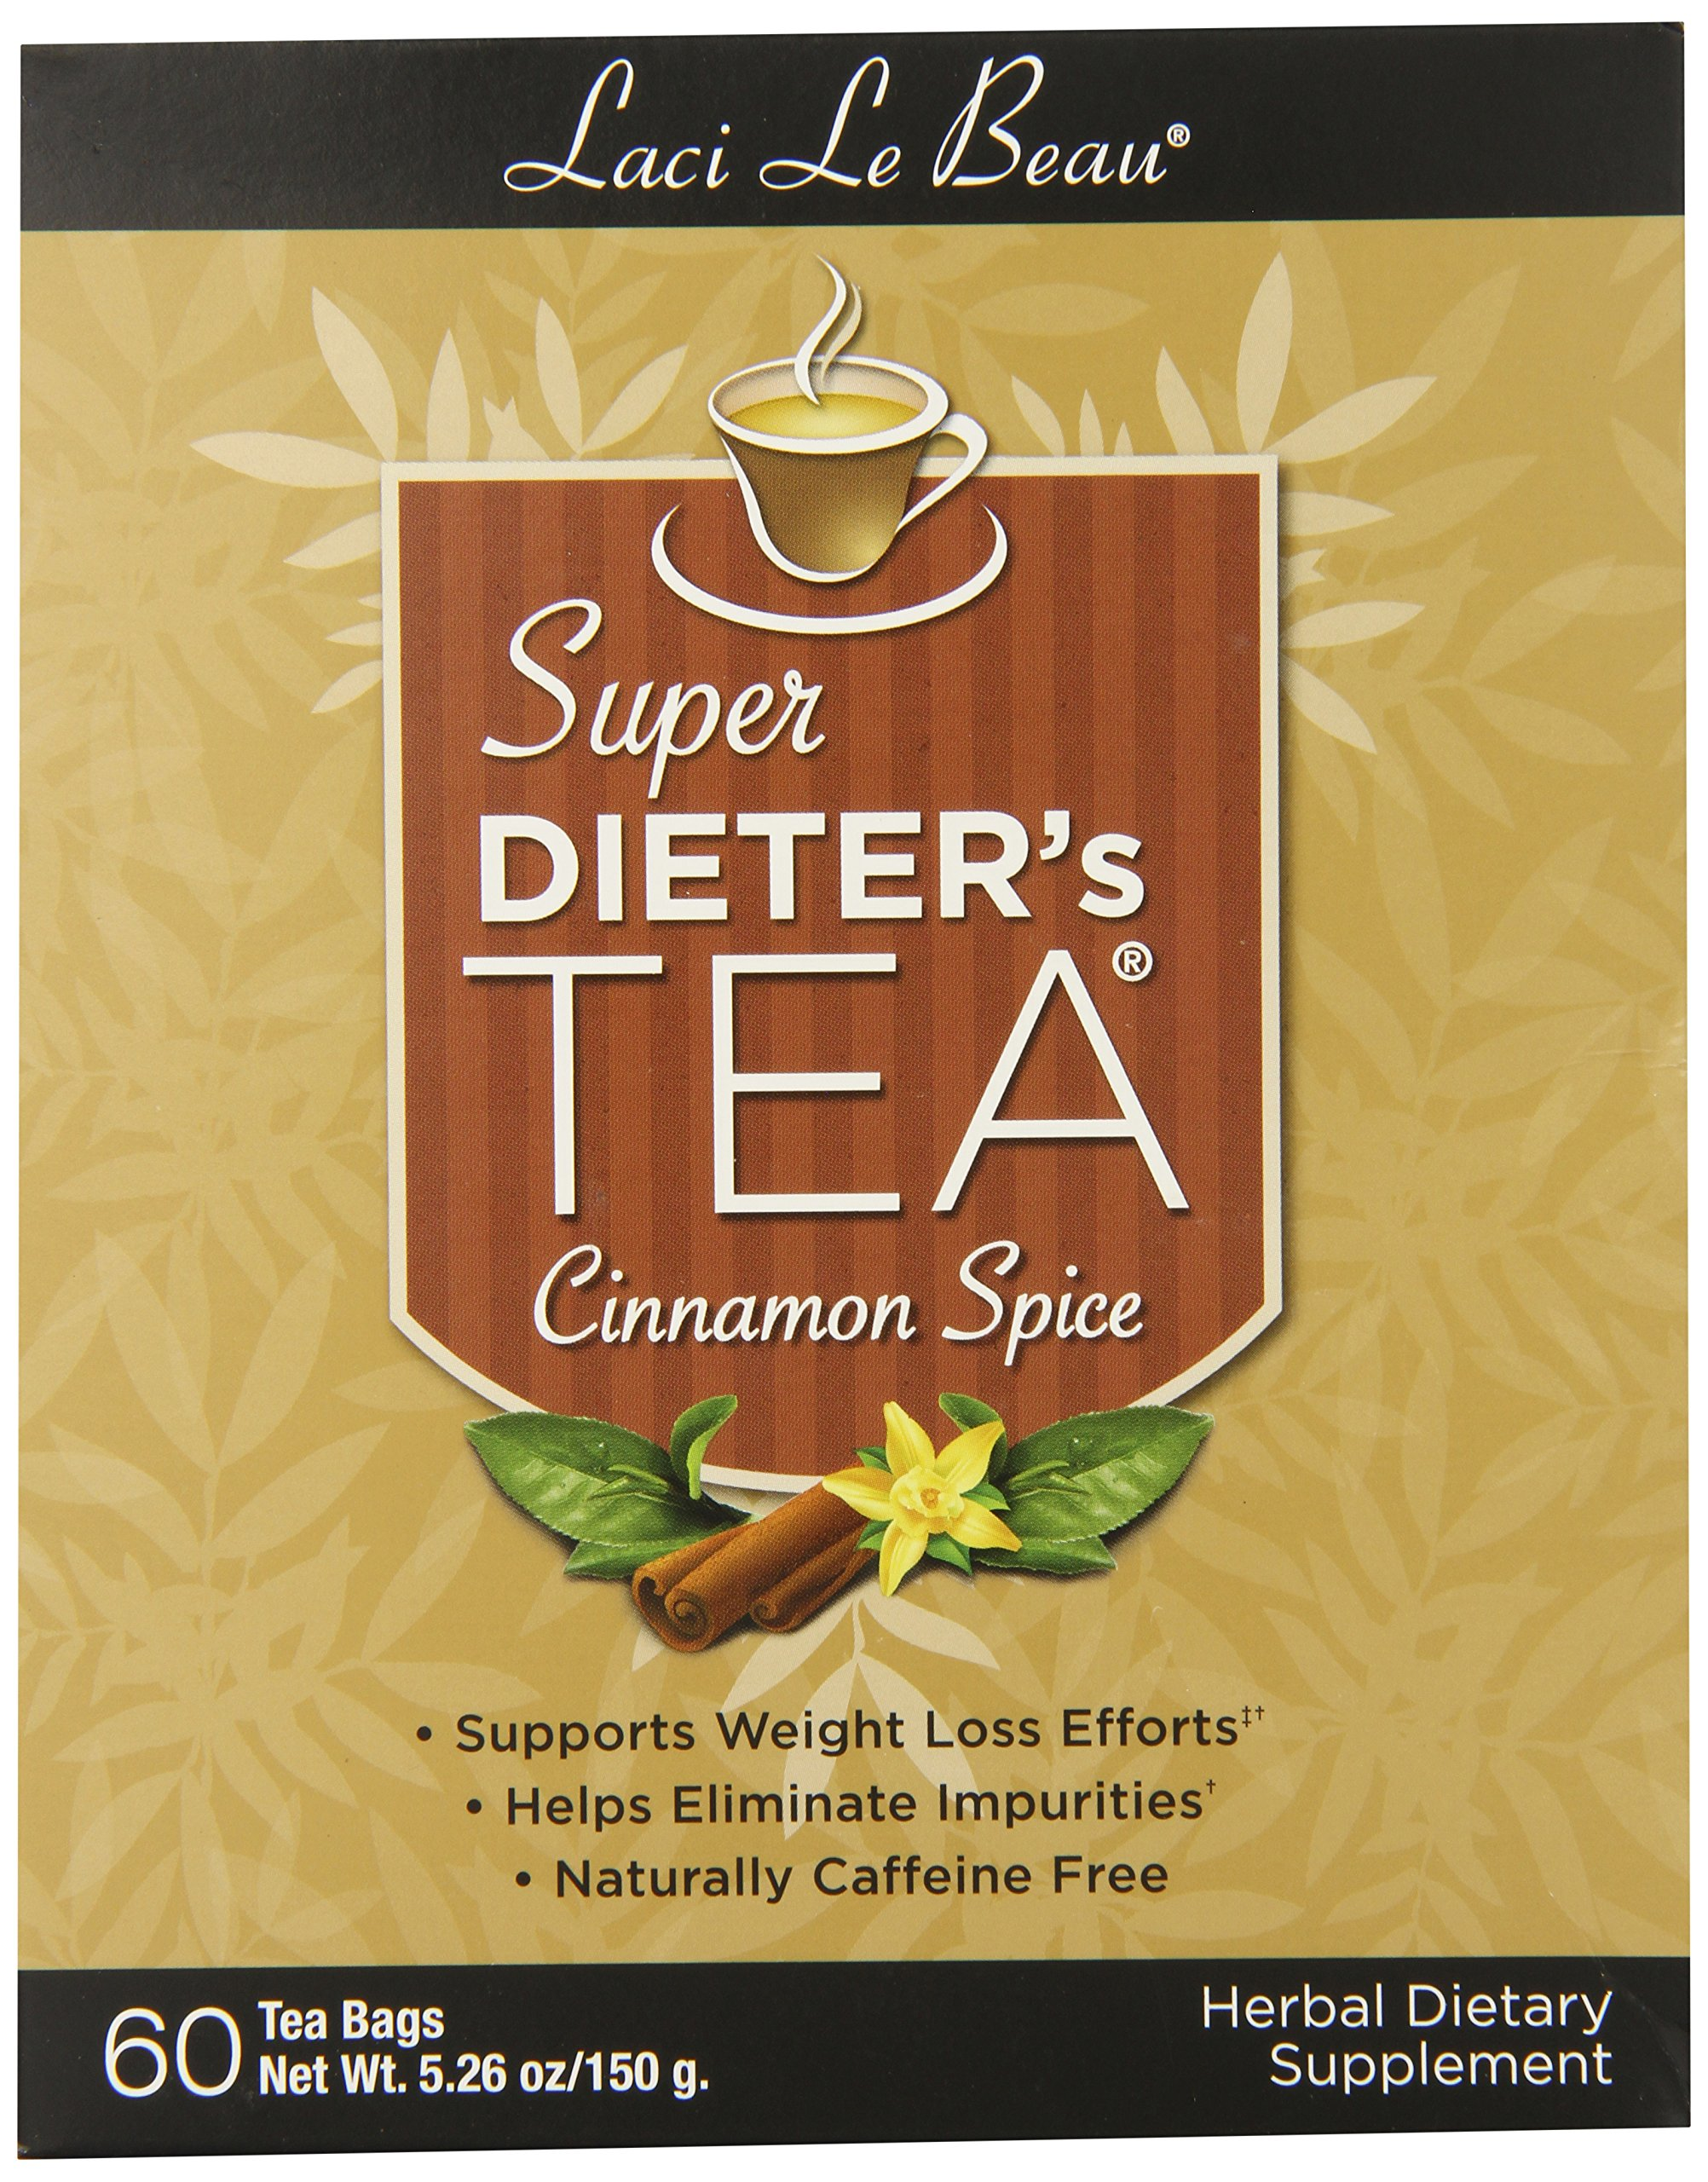 Laci Le Beau Super Dieter's Tea, Cinnamon Spice, 60 Count Box (Pack of 2) by Laci Le Beau